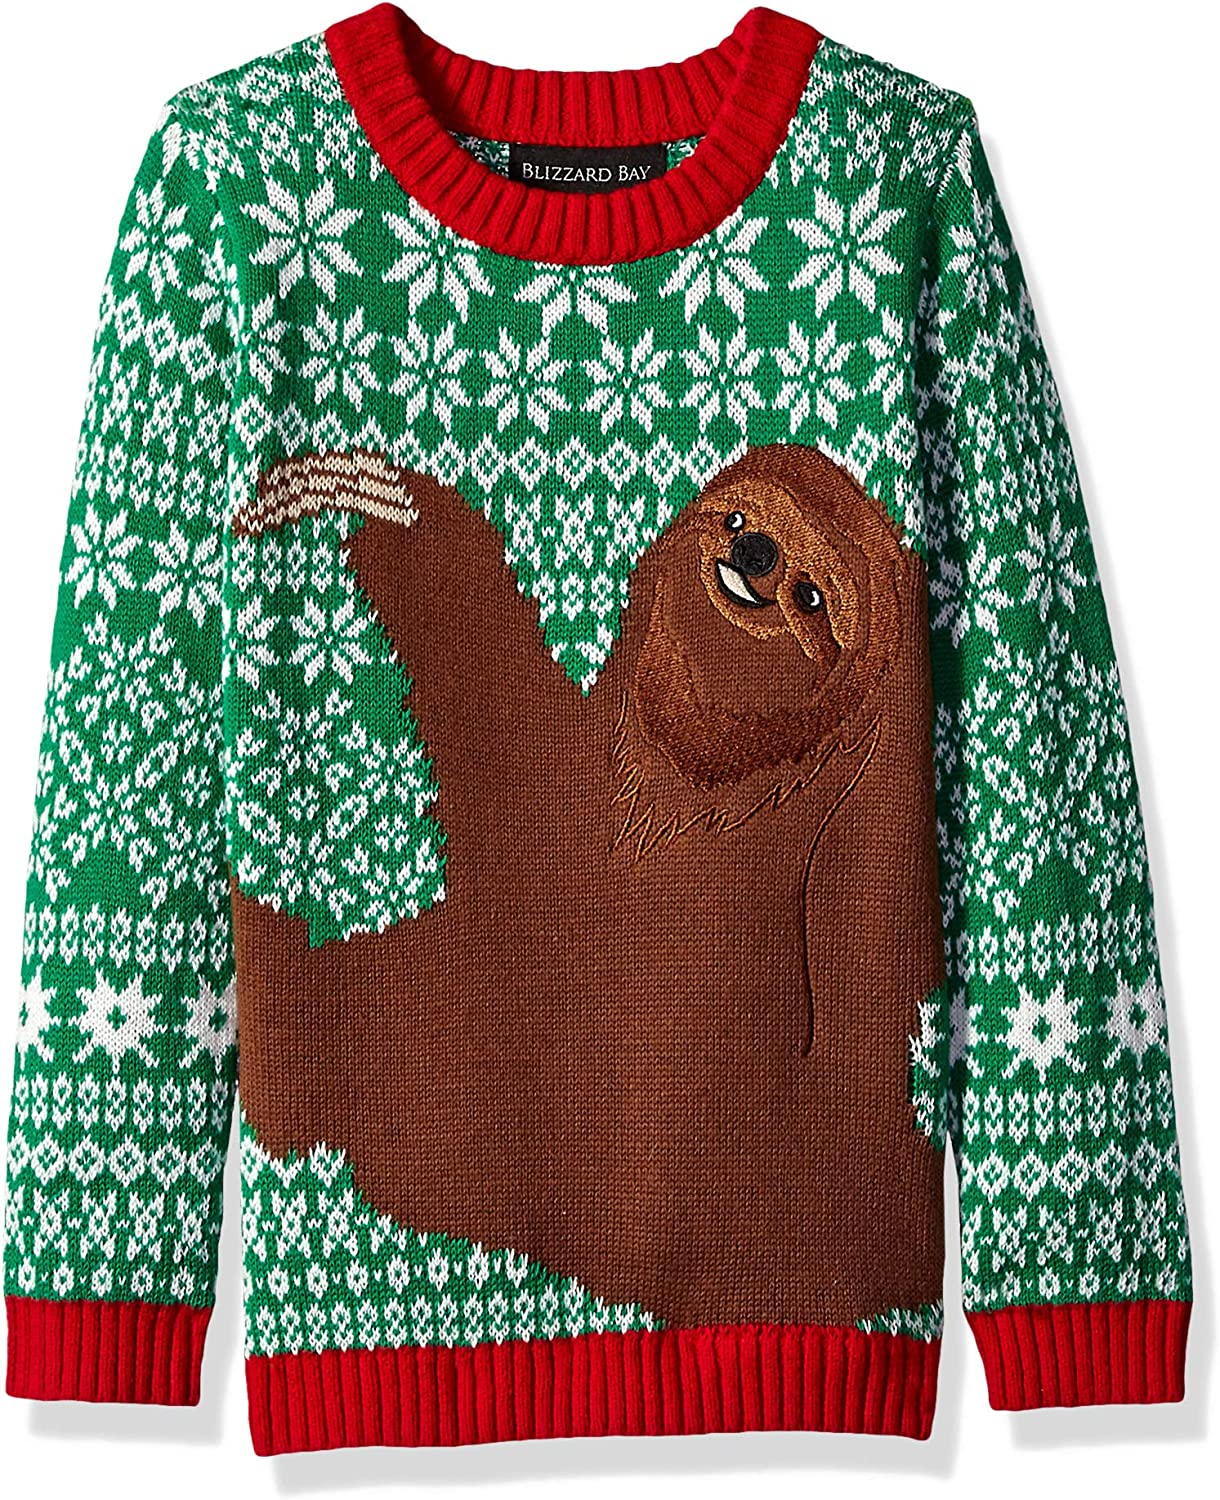 Blizzard Free shipping anywhere in the nation Bay Boys Ugly Chrismas Animals New item Sweater